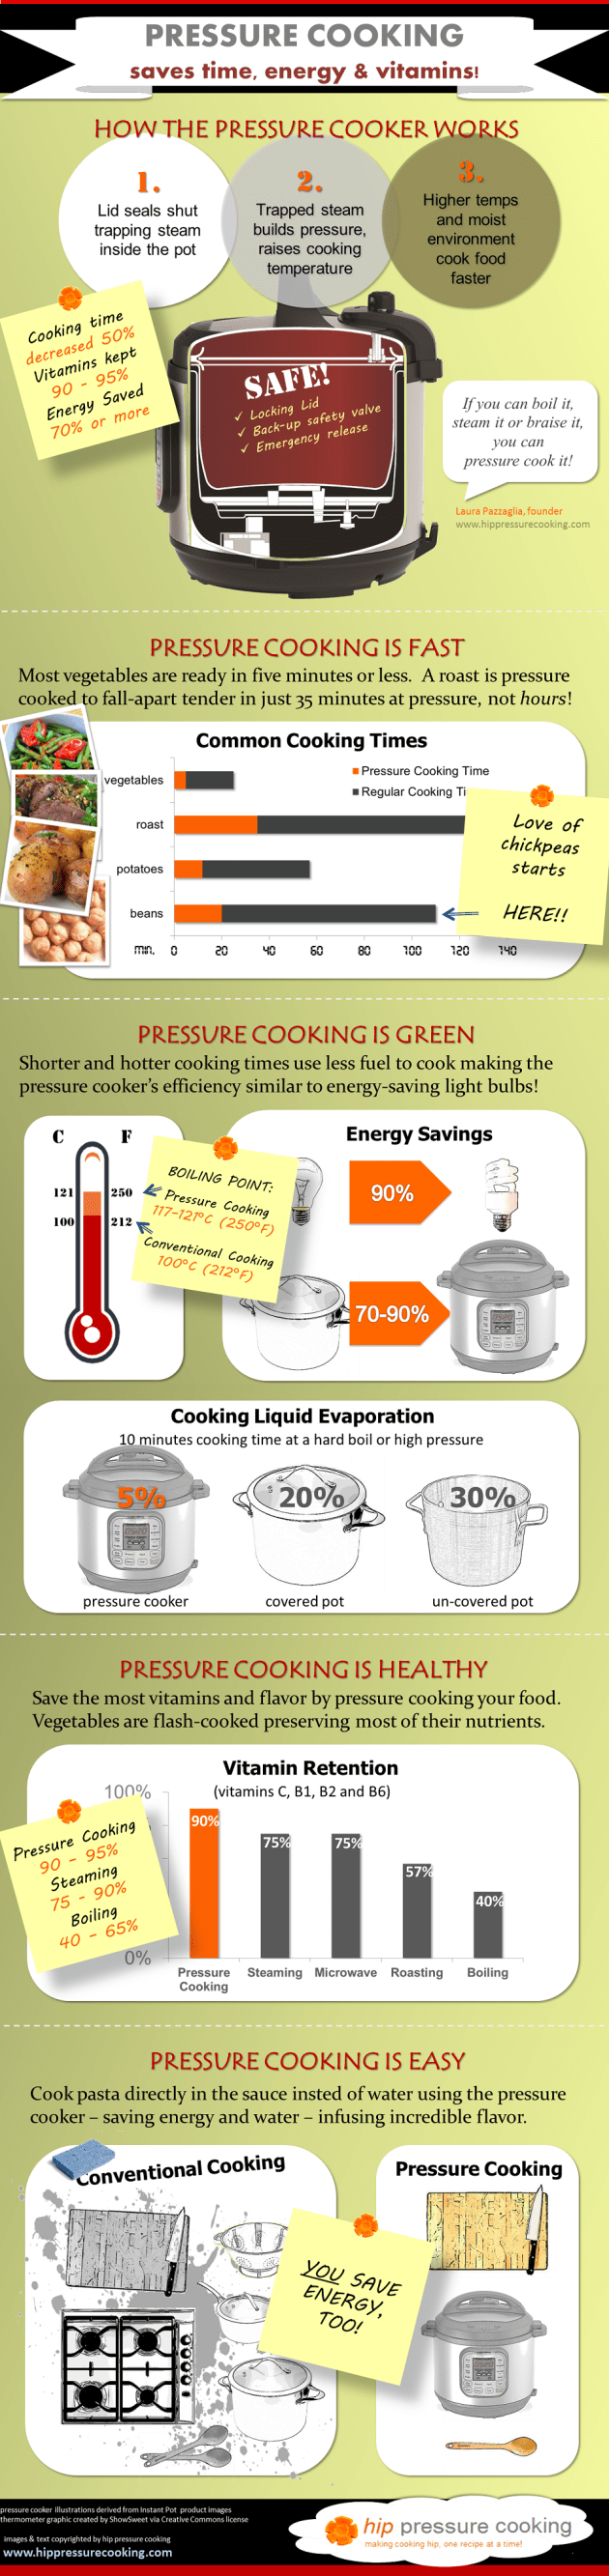 The Benefits of Pressure Cooking